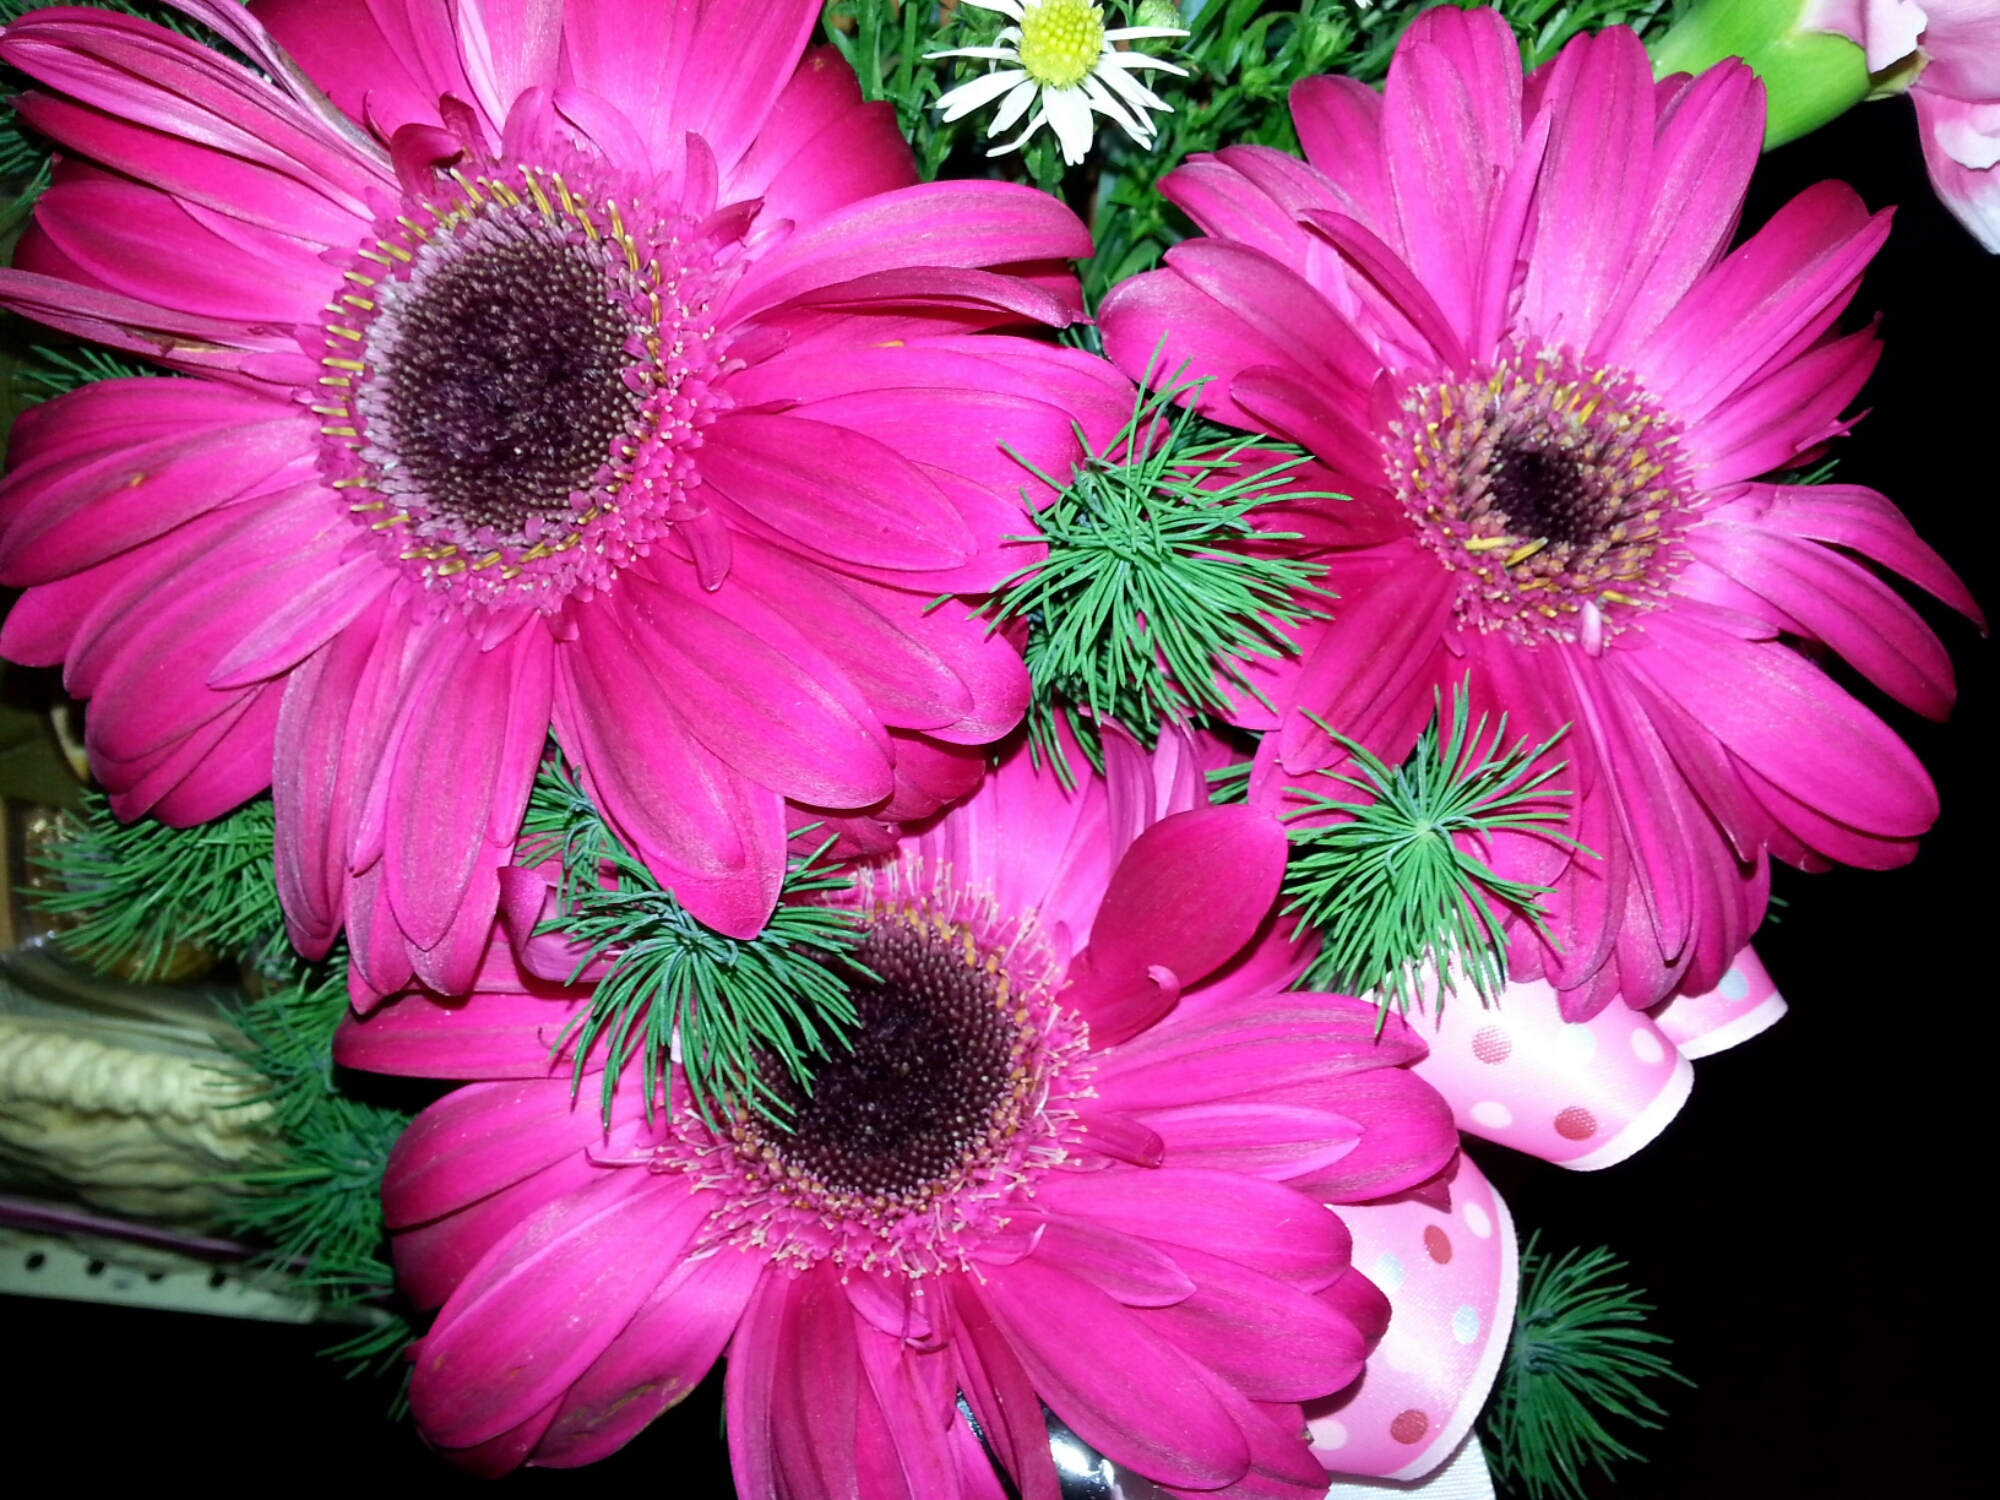 Beautiful and rare pink sunflowers chua hc image mightylinksfo